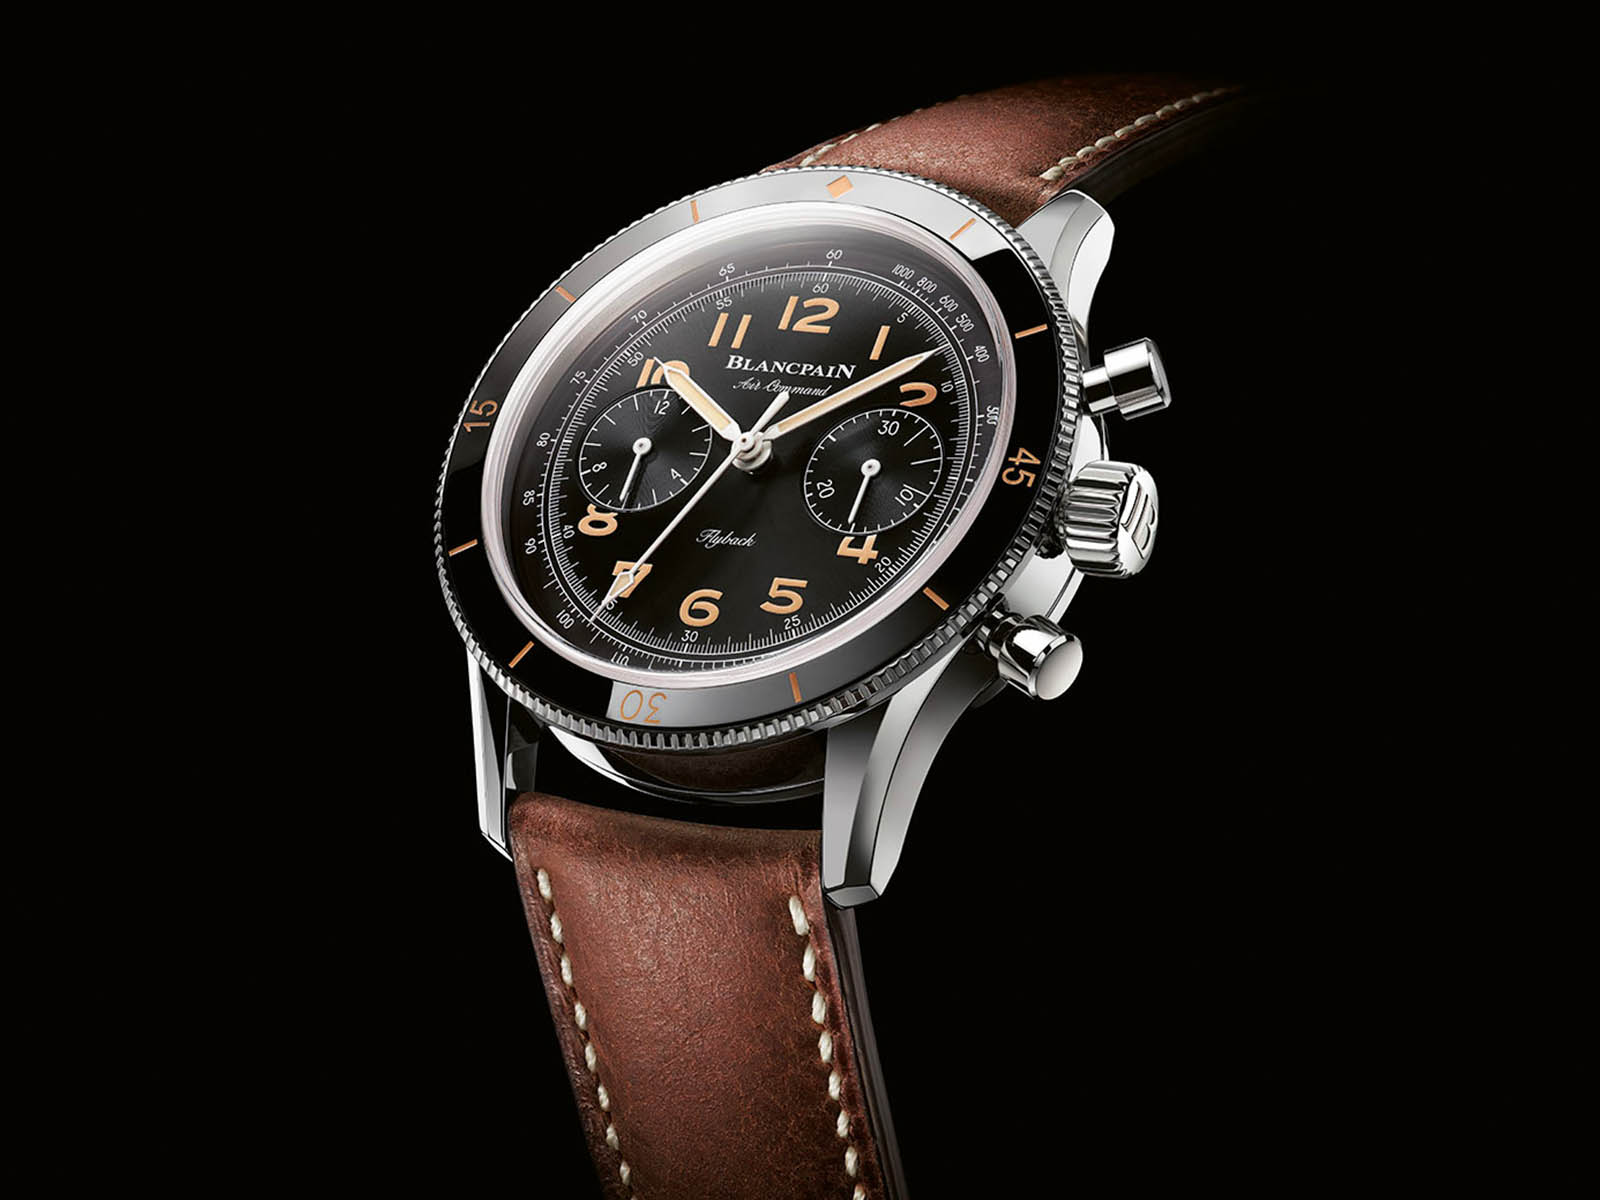 ac01-1130-63a-blancpain-air-command-chronograph-re-edition-2.jpg